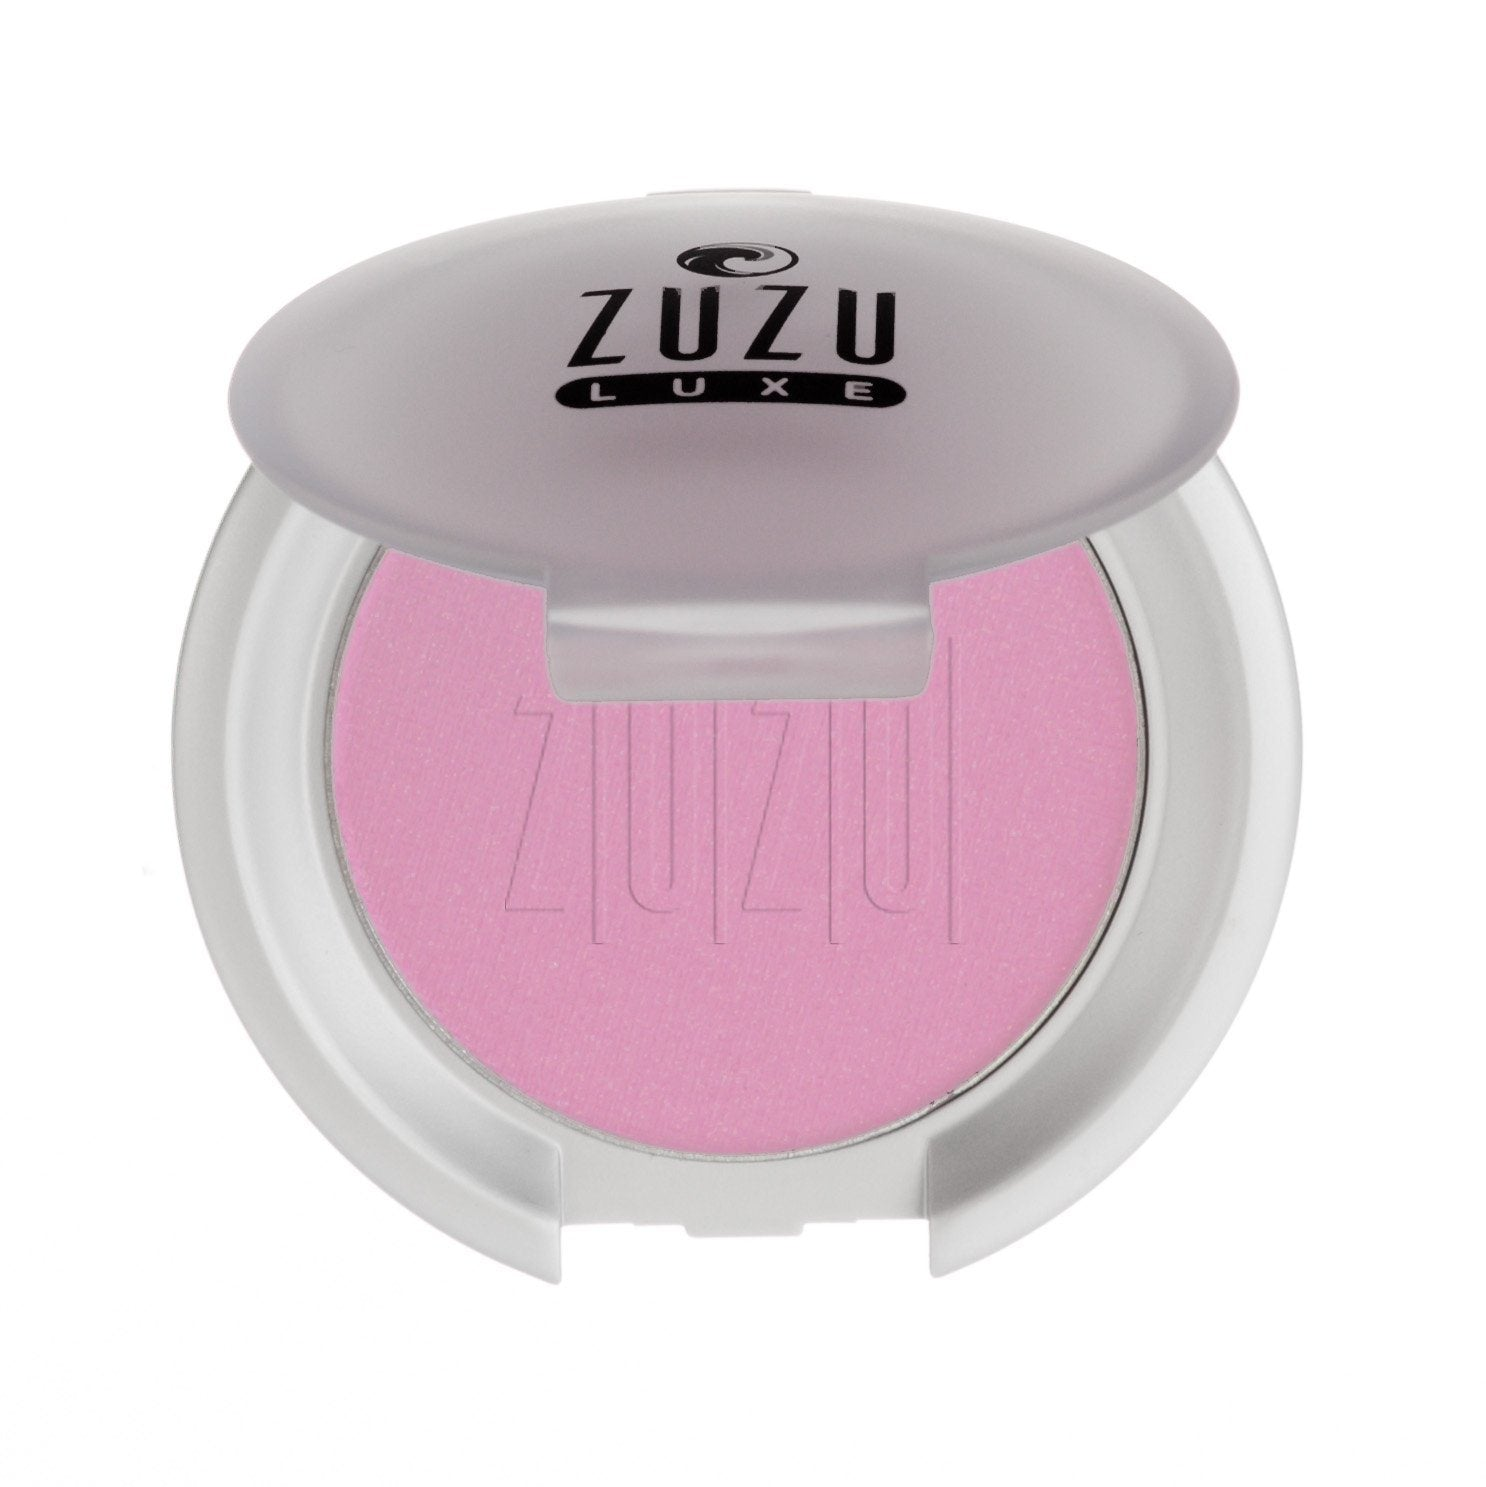 Beauty & Skin Care,Food & Drink - Zuzu Luxe - Gluten Free Blush, Nymph